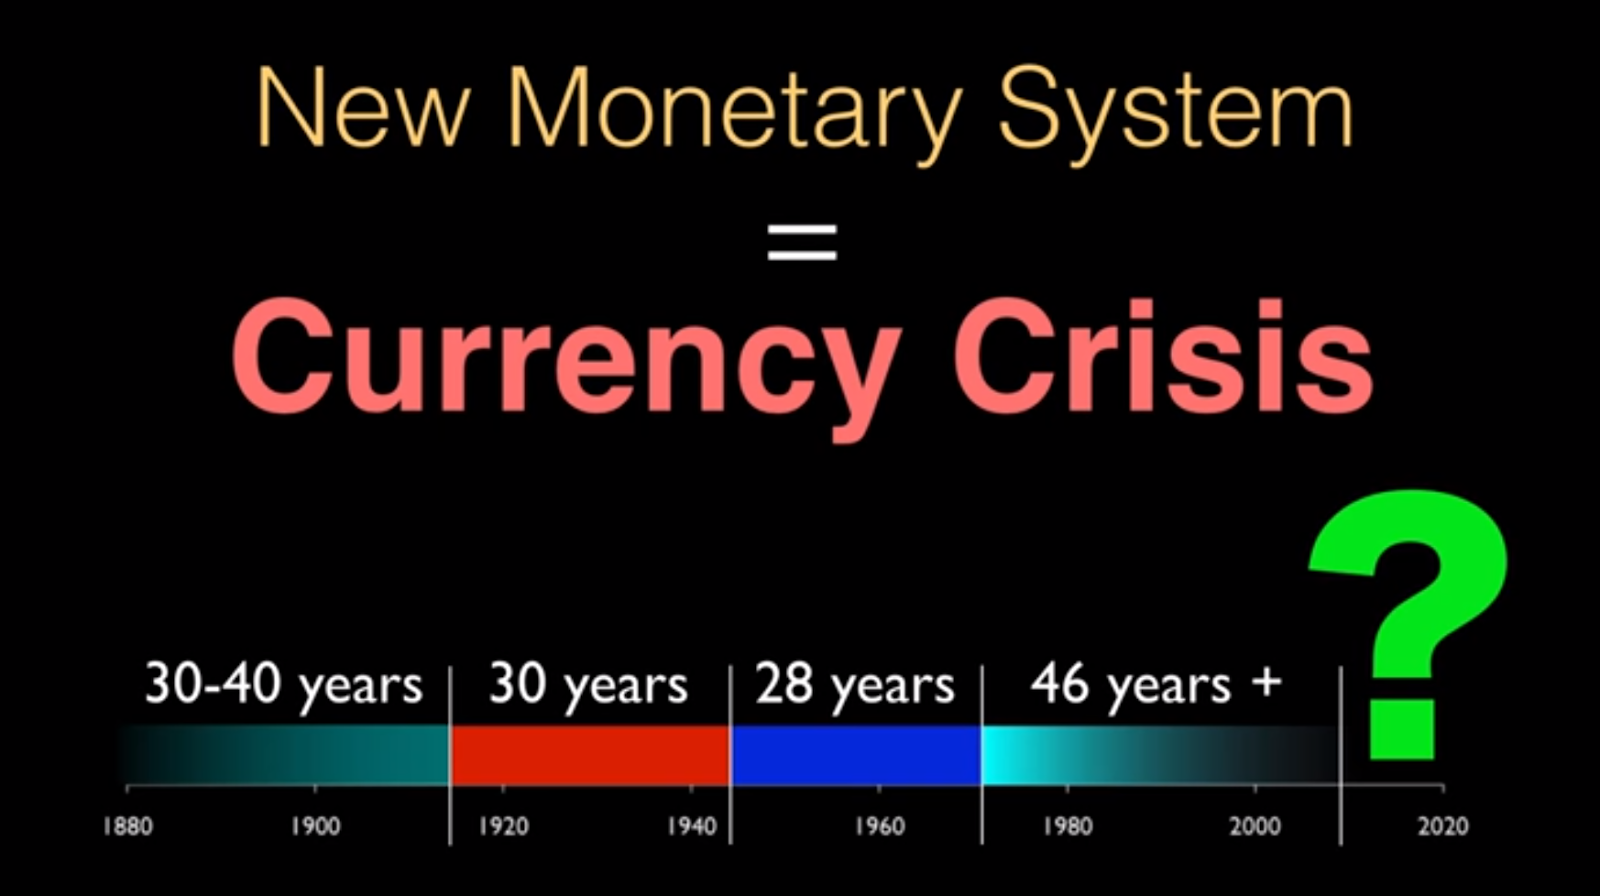 It's time for a new monetary system